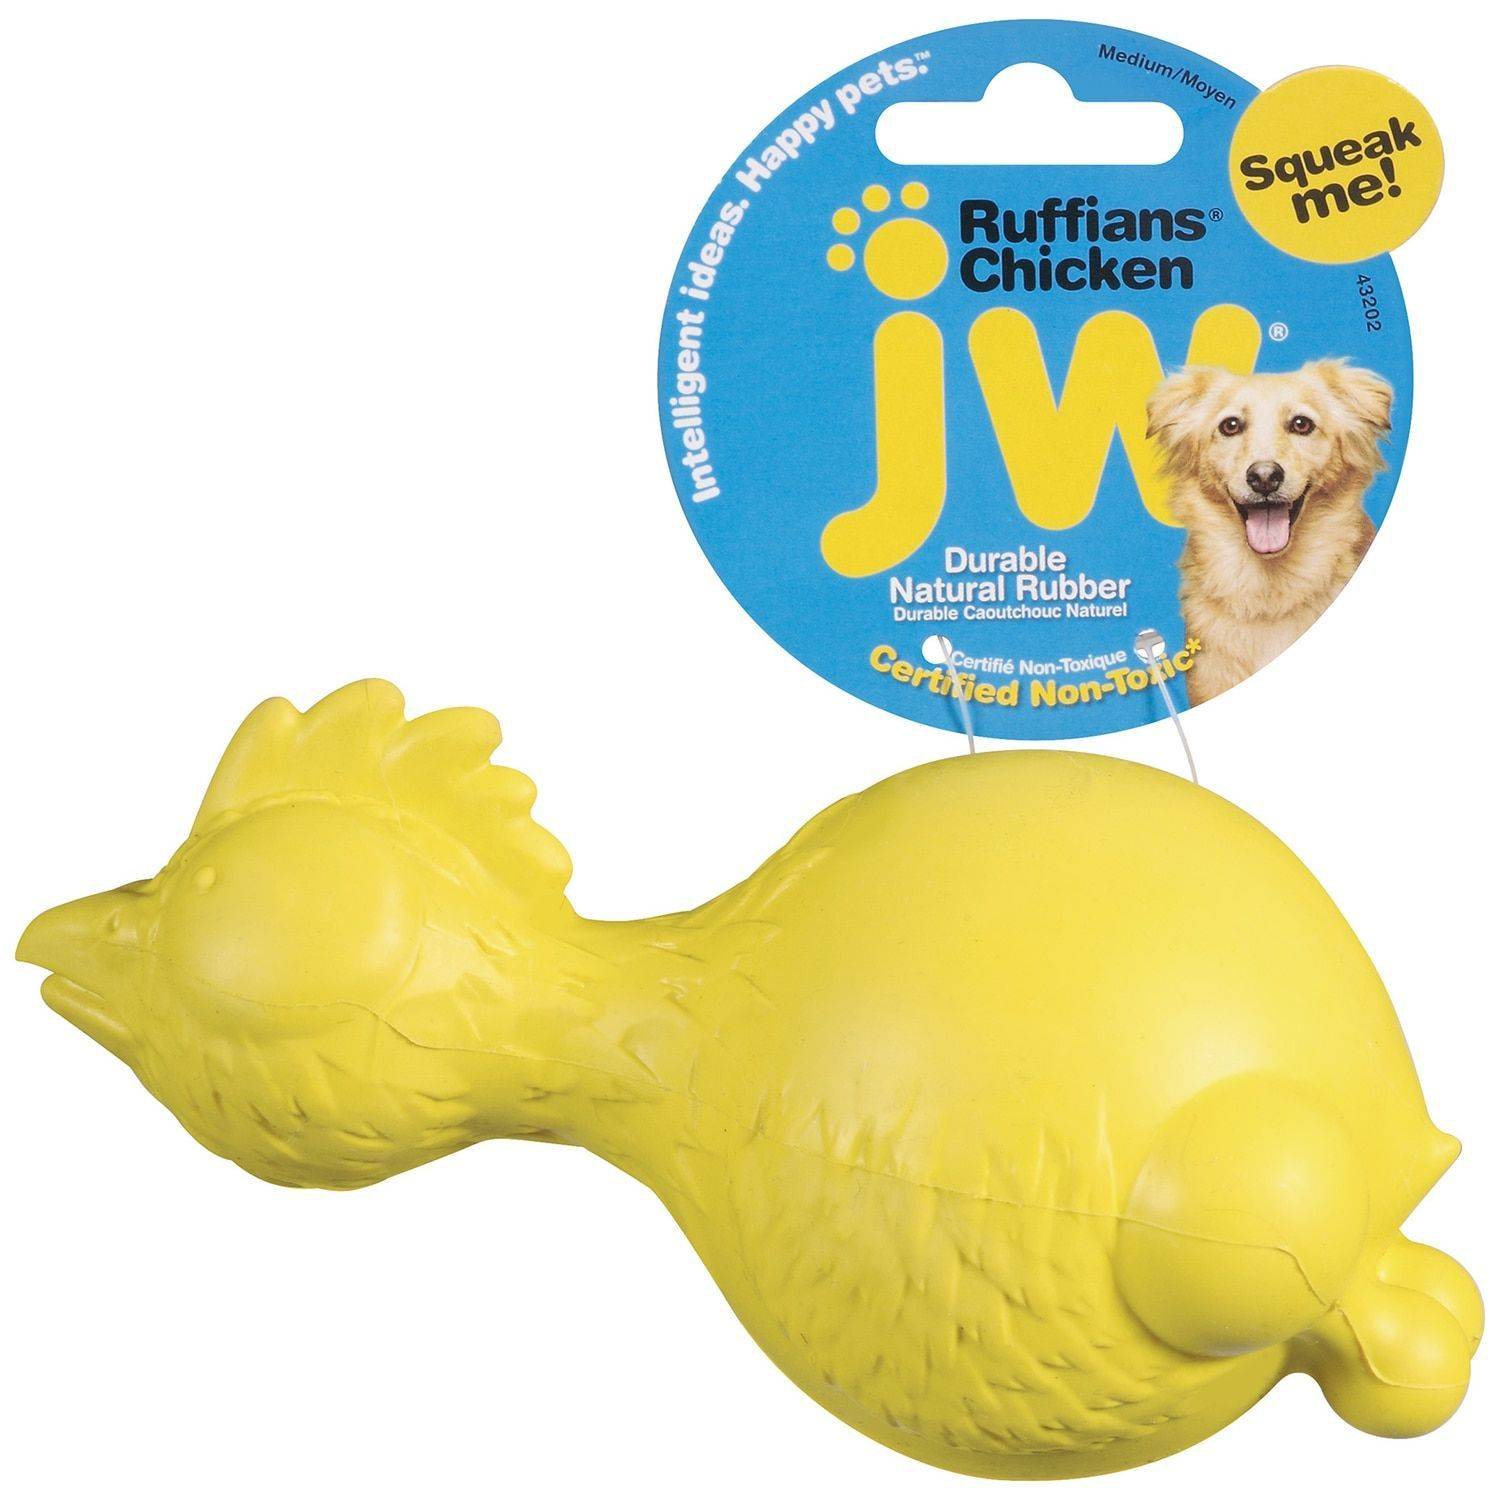 Jw Pet Company Ruffians Chicken Dog Toy Ruffians Chicken Grey